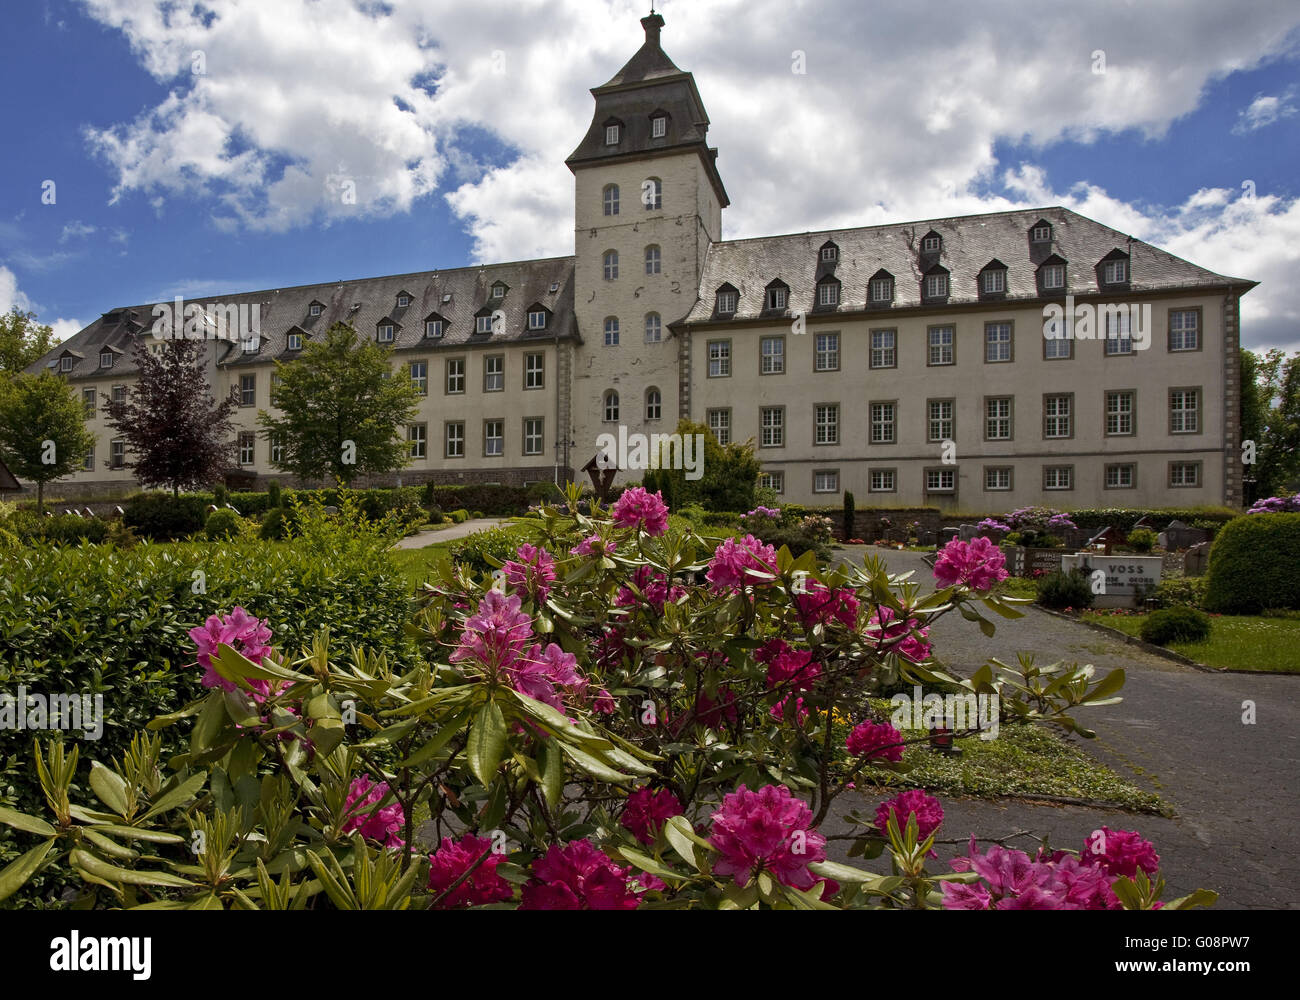 The monastery in the county, Schmallenberg,Germany - Stock Image